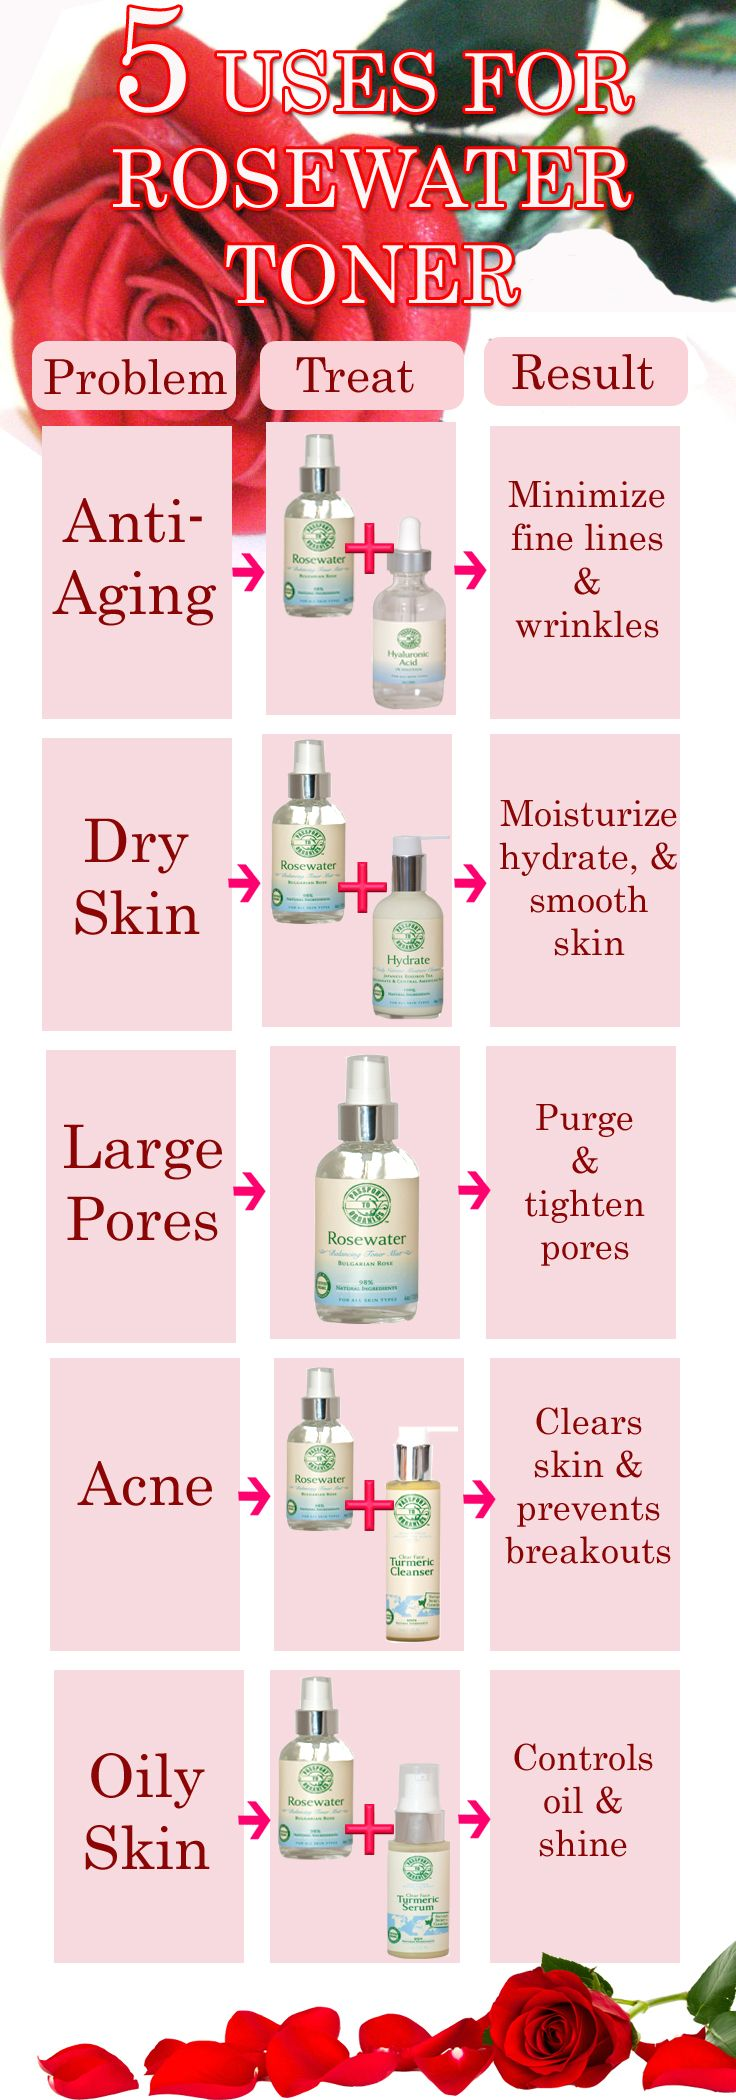 Check out these 5 uses for Rosewater Toner! Anti-Aging: Rosewater Toner & Hyaluronic Acid Serum, Dry Skin: Rosewater Toner & Hydrate Cleanser, Large Pores: Rosewater Toner, Acne: Rosewater Toner & Turmeric Cleanser, Oily Skin: Rosewater Toner & Turmeric Serum. Get this must  have beauty item at www.passporttoorganics.com